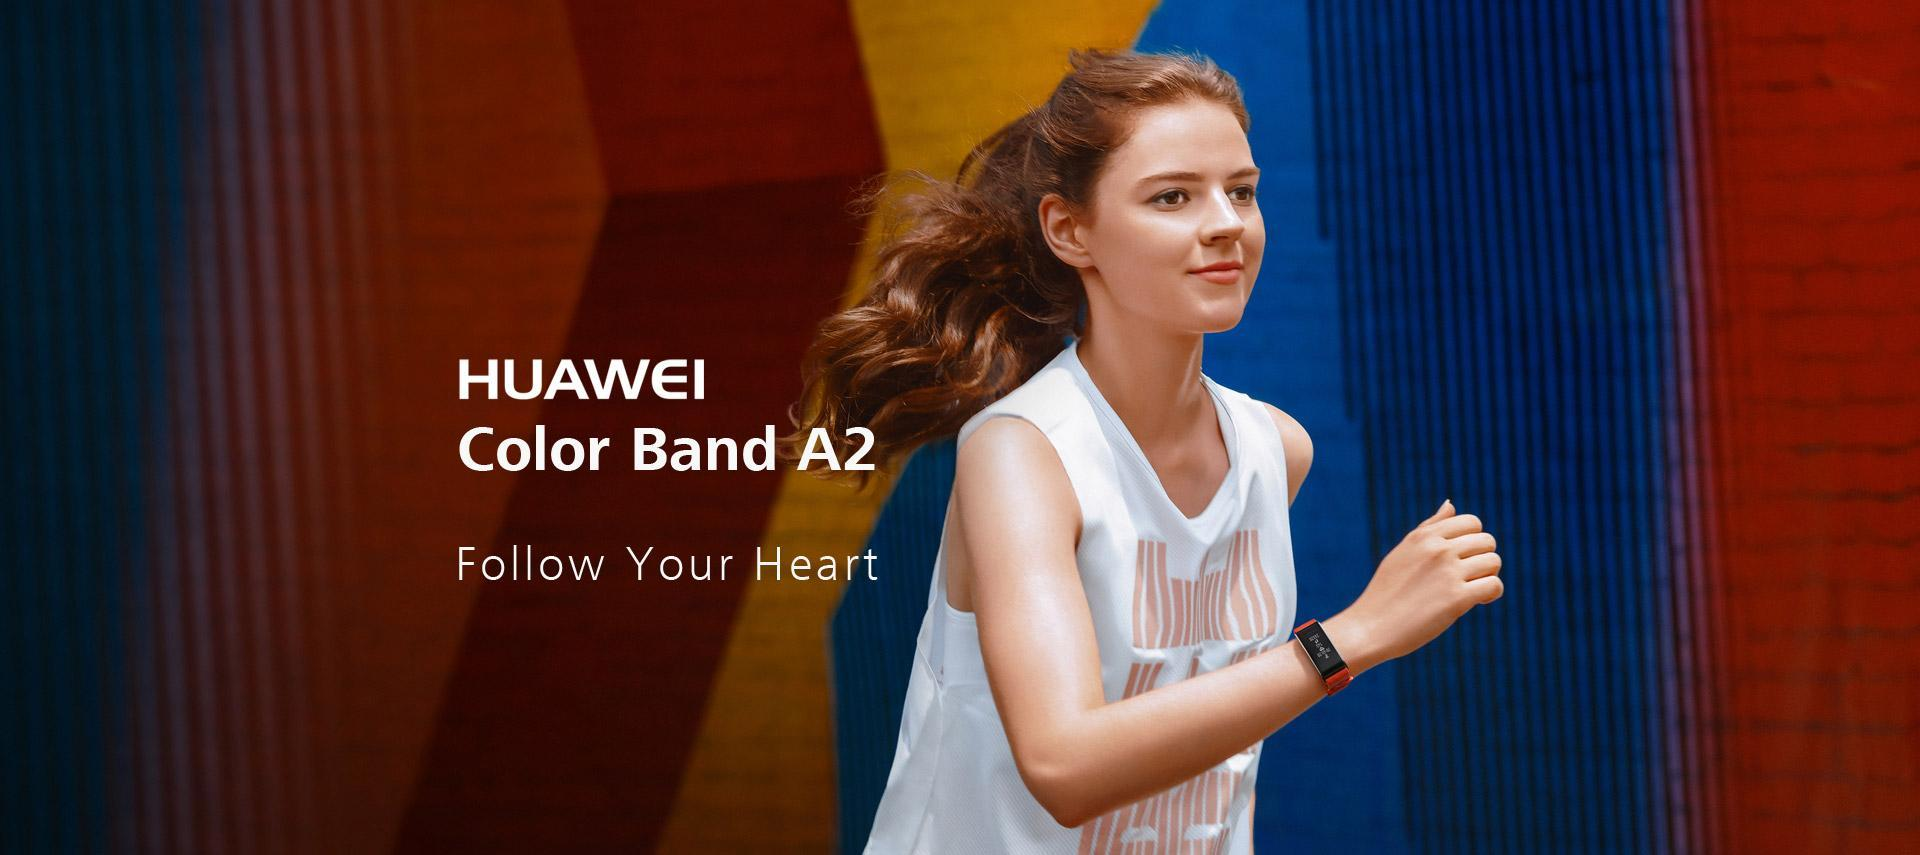 Huawei Color Band A2 Follow Your Heart